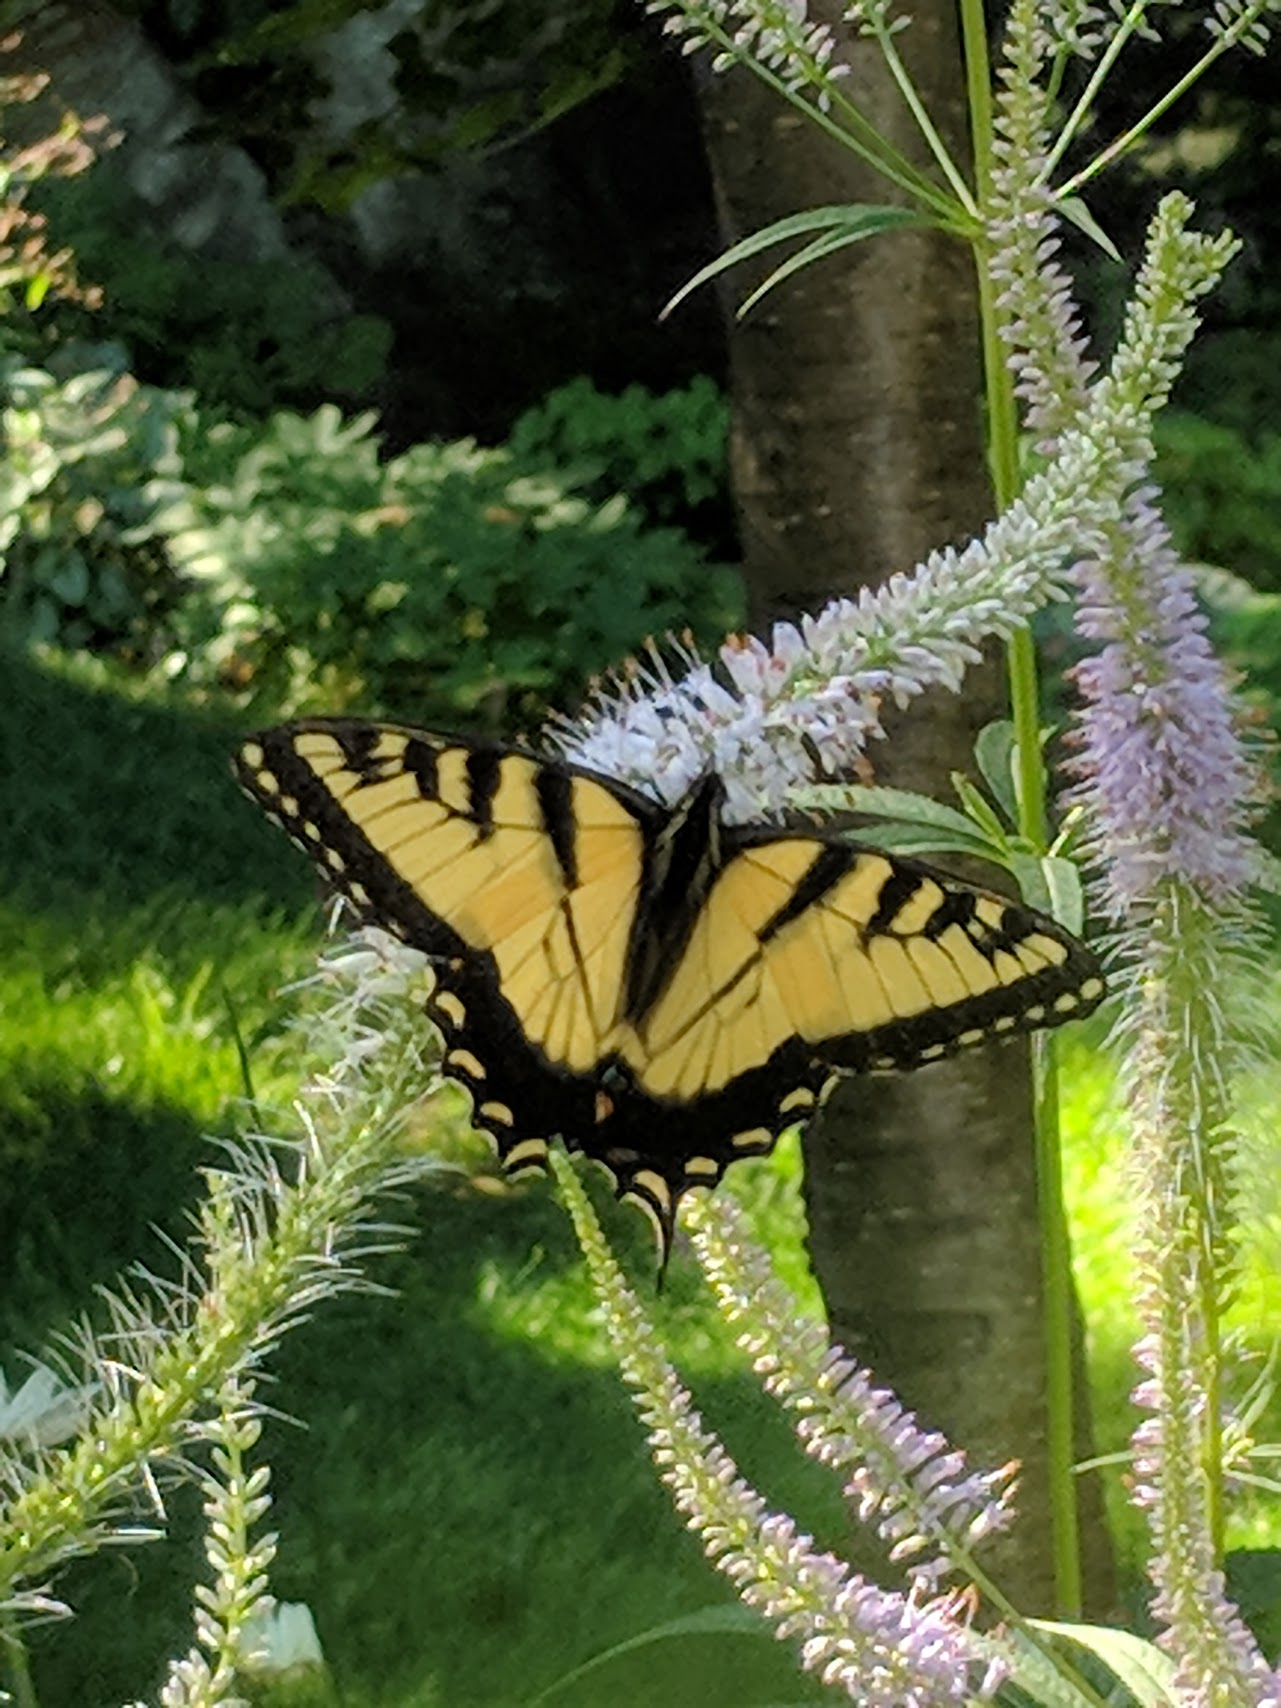 Male Swallowtail is striking against the curvy Veronicastrum bloom.